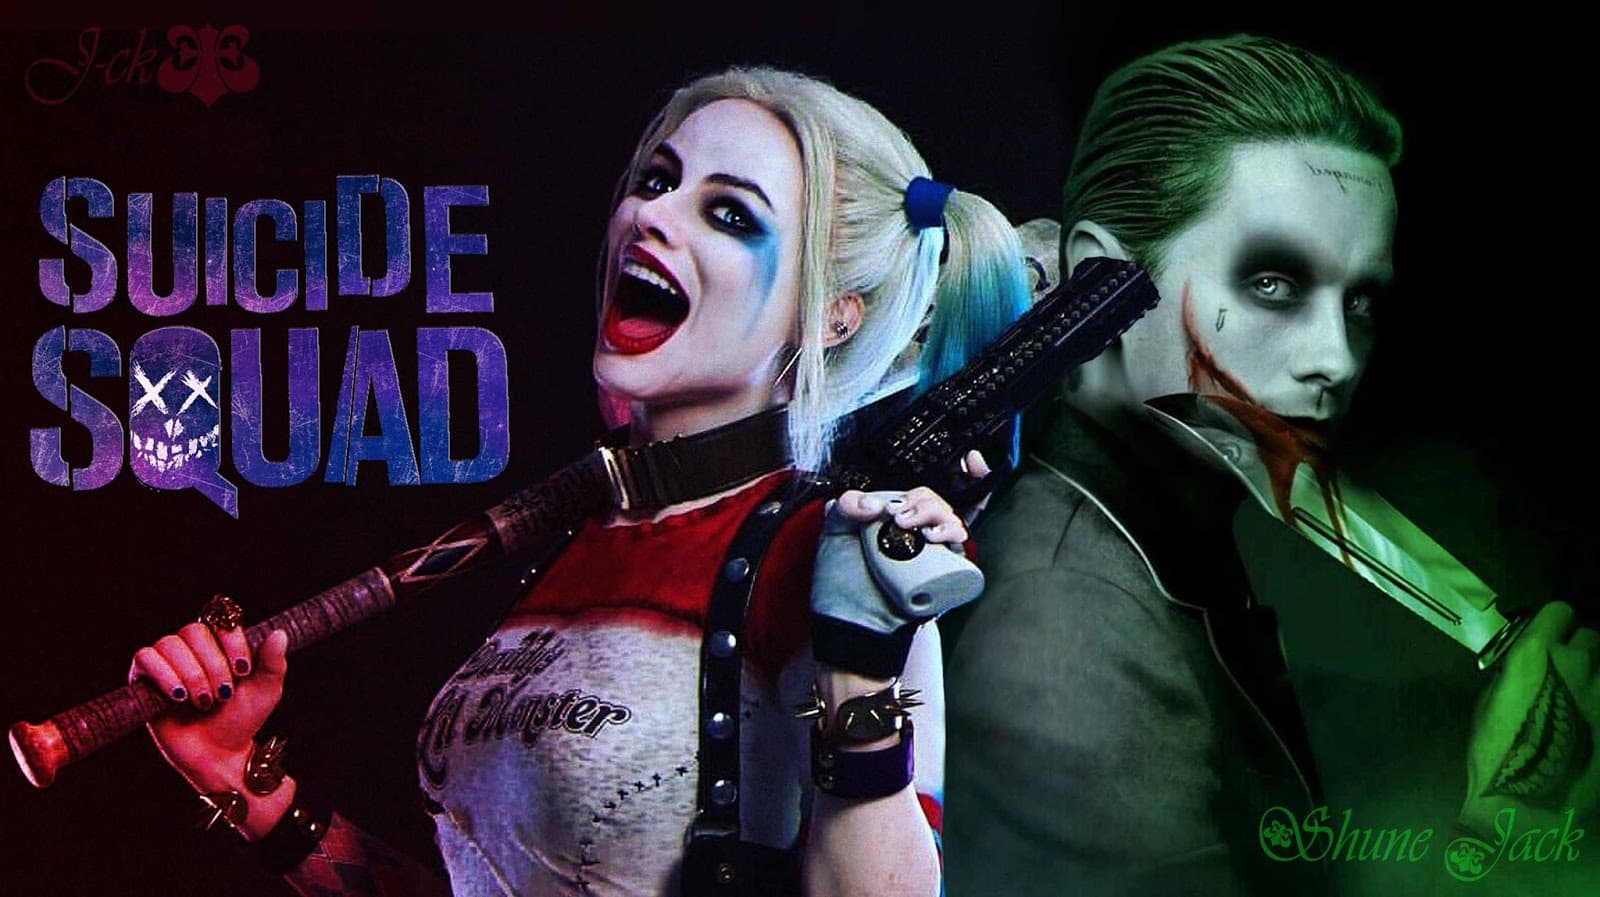 Harley Quinn Wallpaper 1920x1080 Posted By Sarah Walker